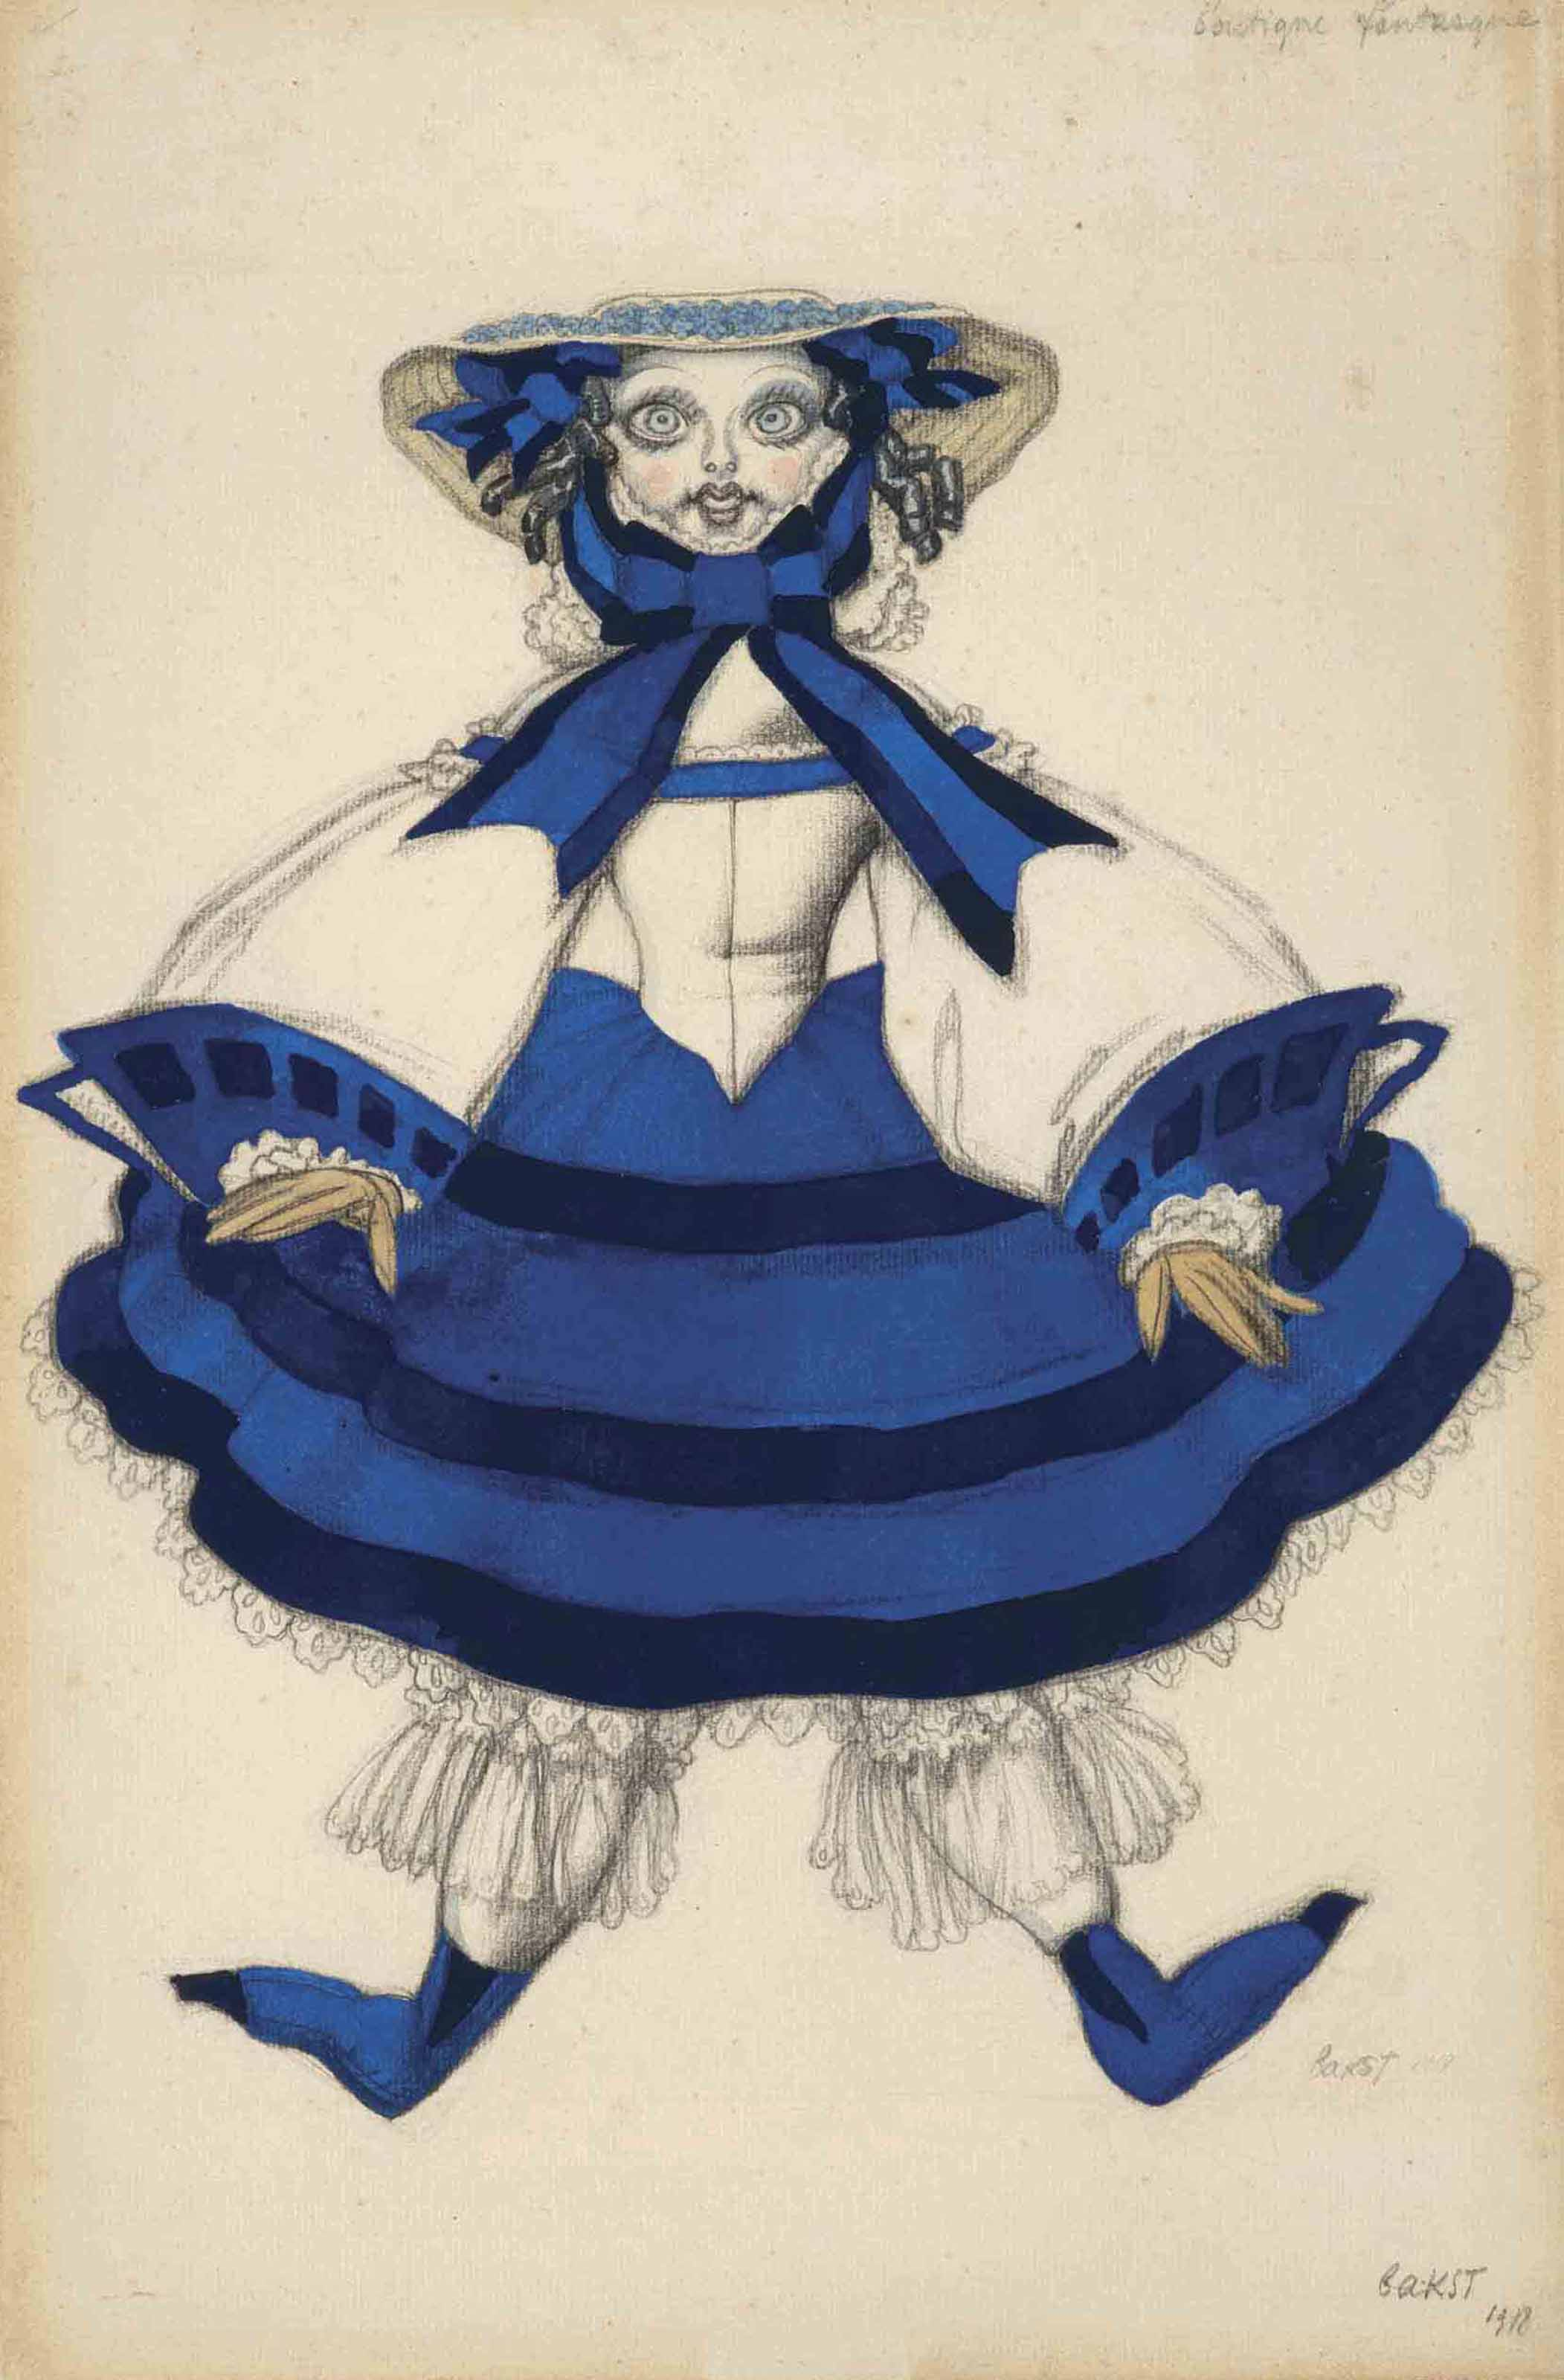 Costume design for 'La Boutique Fantasque': une poupée française